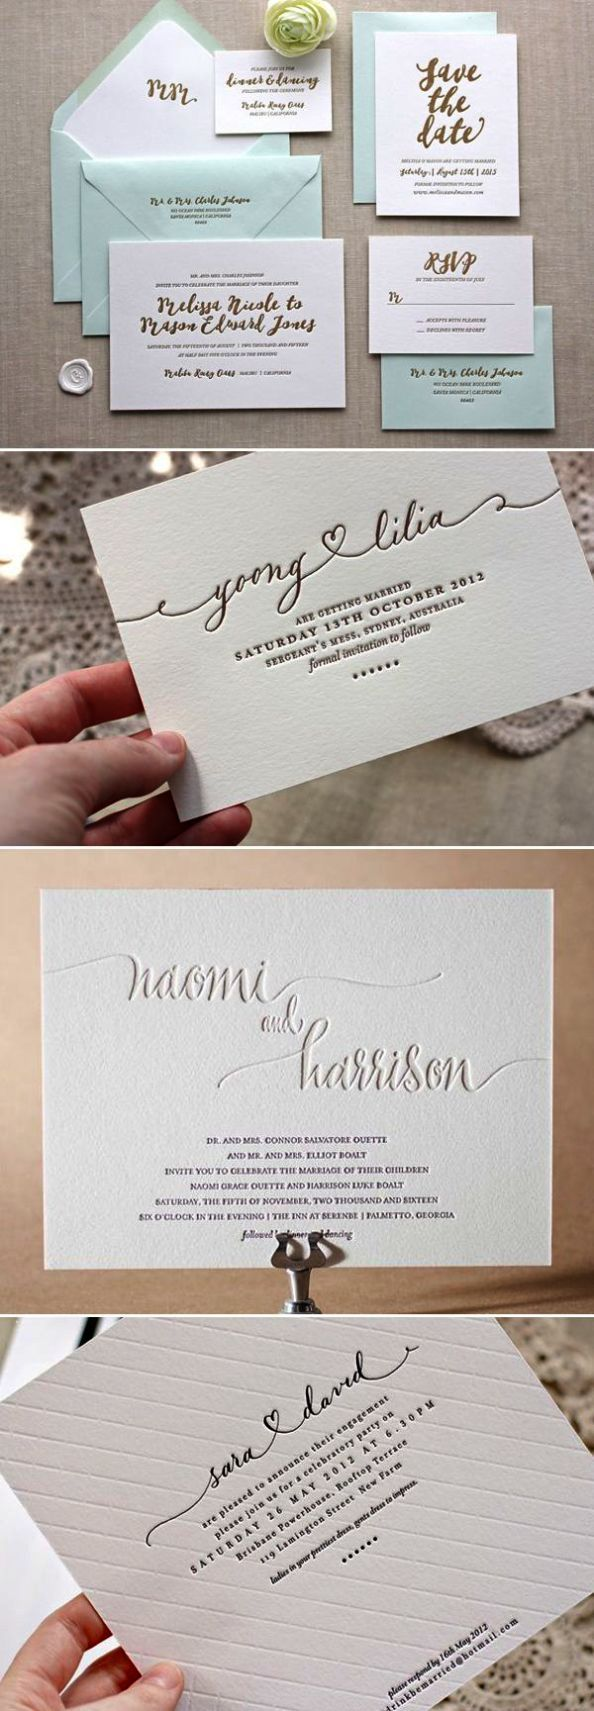 Look what i discovered diy wedding invitations template xoxo es